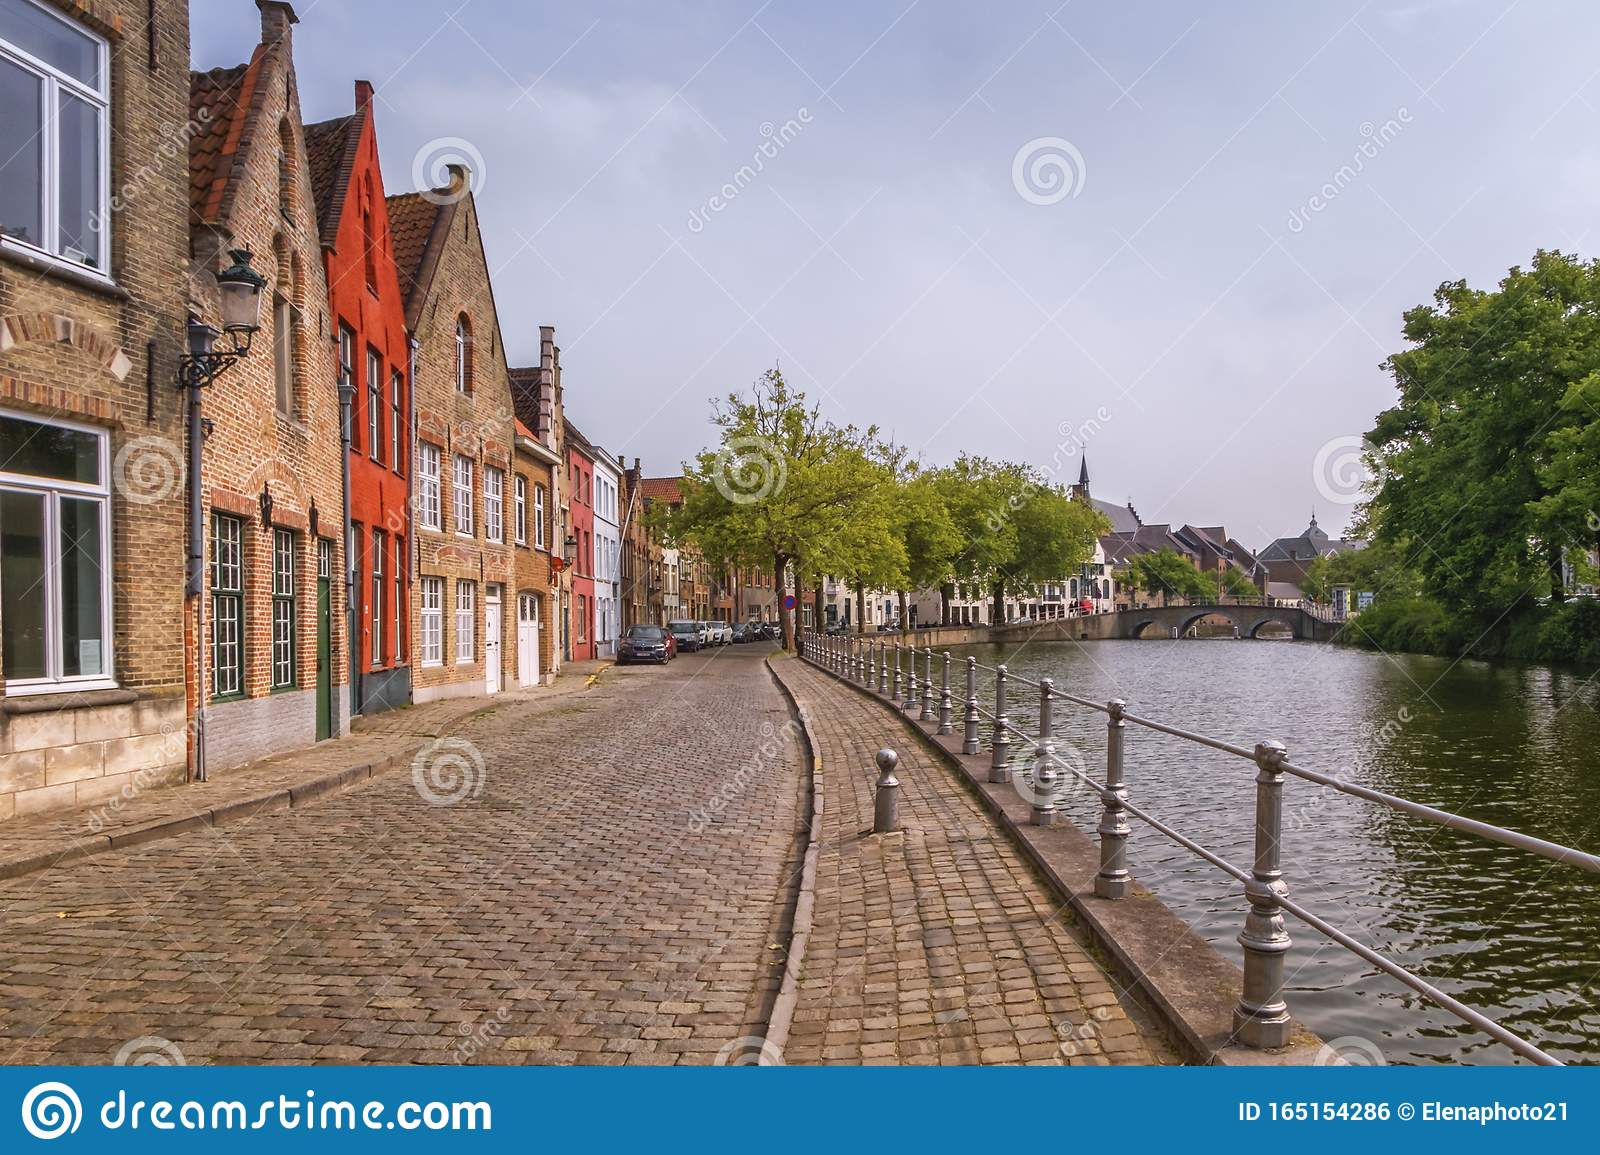 Traditional red brick houses and canal in Bruges, Belgium